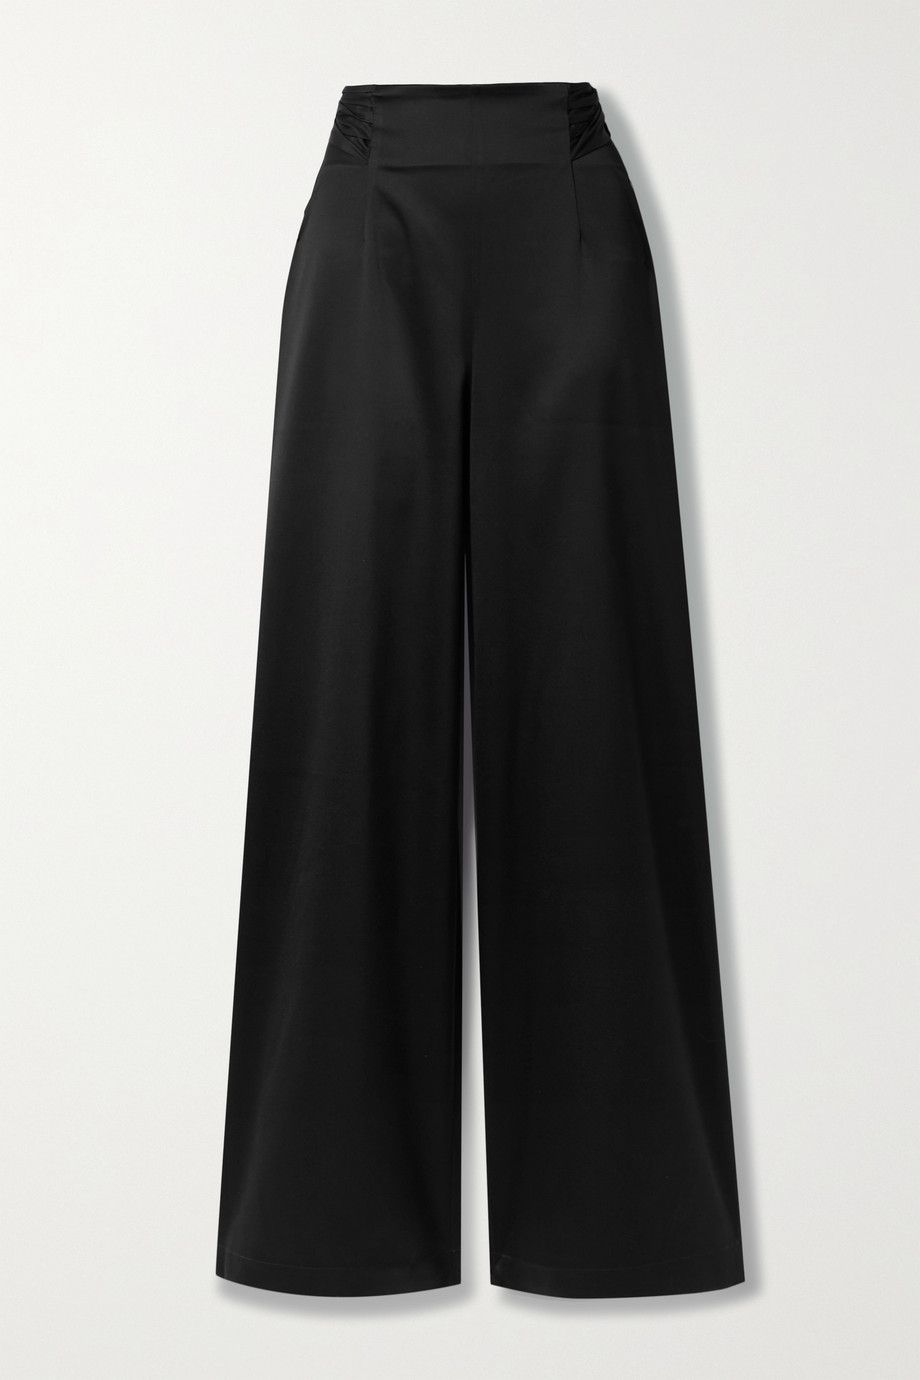 ARTCLUB + NET SUSTAIN Rossini belted silk taffeta-trimmed satin wide-leg pants